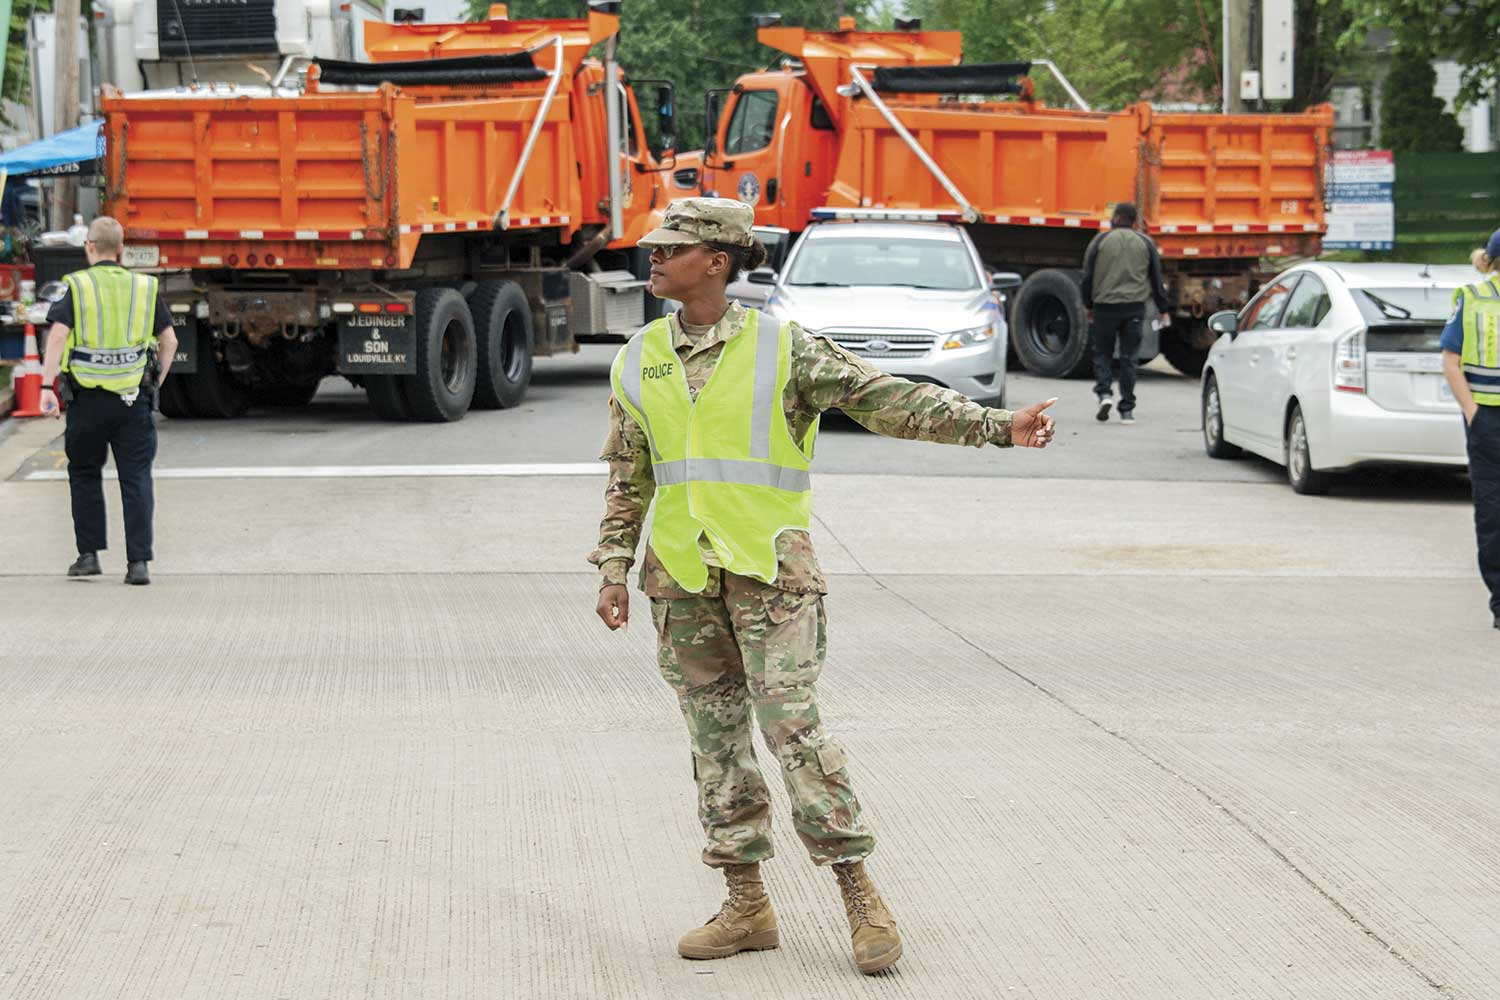 An officer directs traffic in front of two large dump trucks. Dump trucks were first used at Kentucky Derby events in 2016, during the Pegasus Parade. According to Lt. Jill Hume, this was the first real security measure taken to prevent vehicle rammings like those going on around the world at that time. (Photo by Jim Robertson)